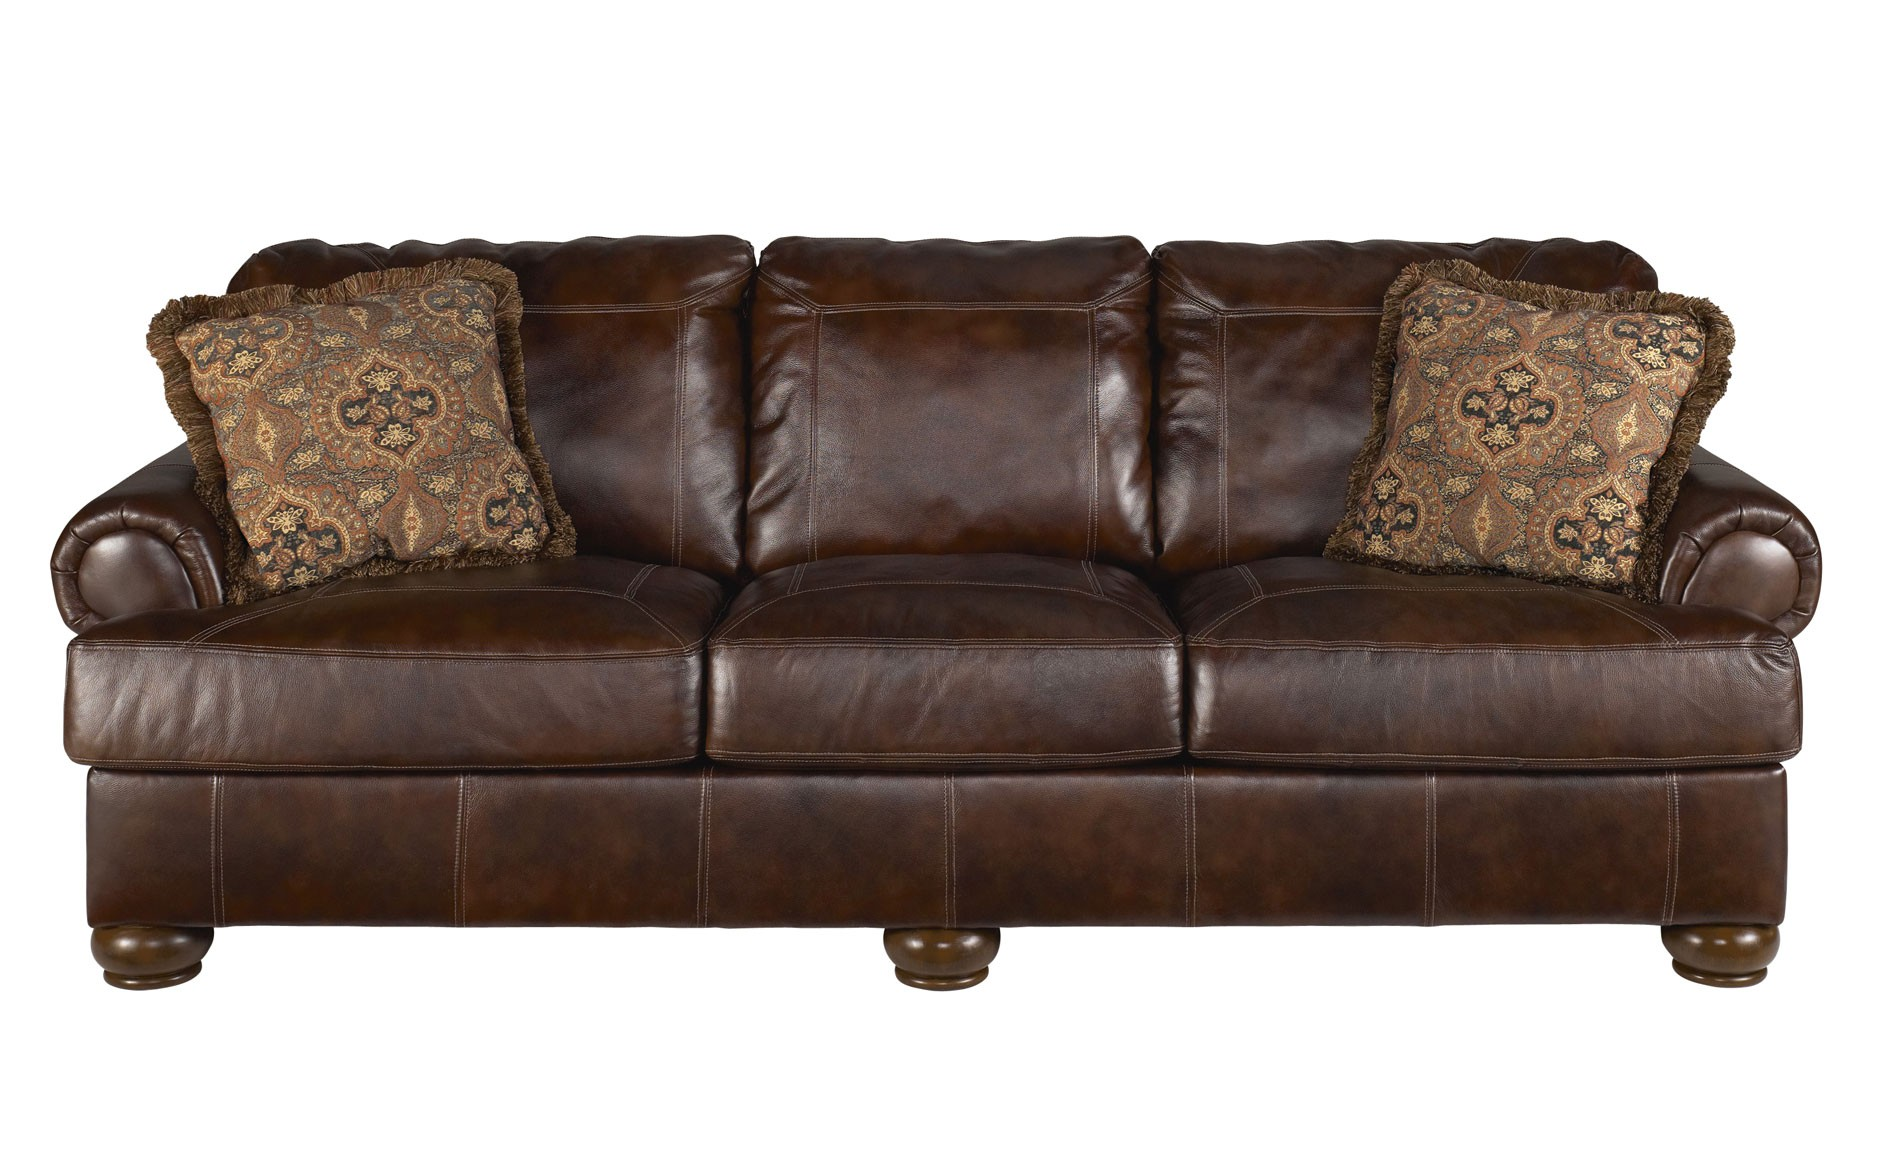 Deep Seated Sofa Distressed Leather Sectional Homesfeed